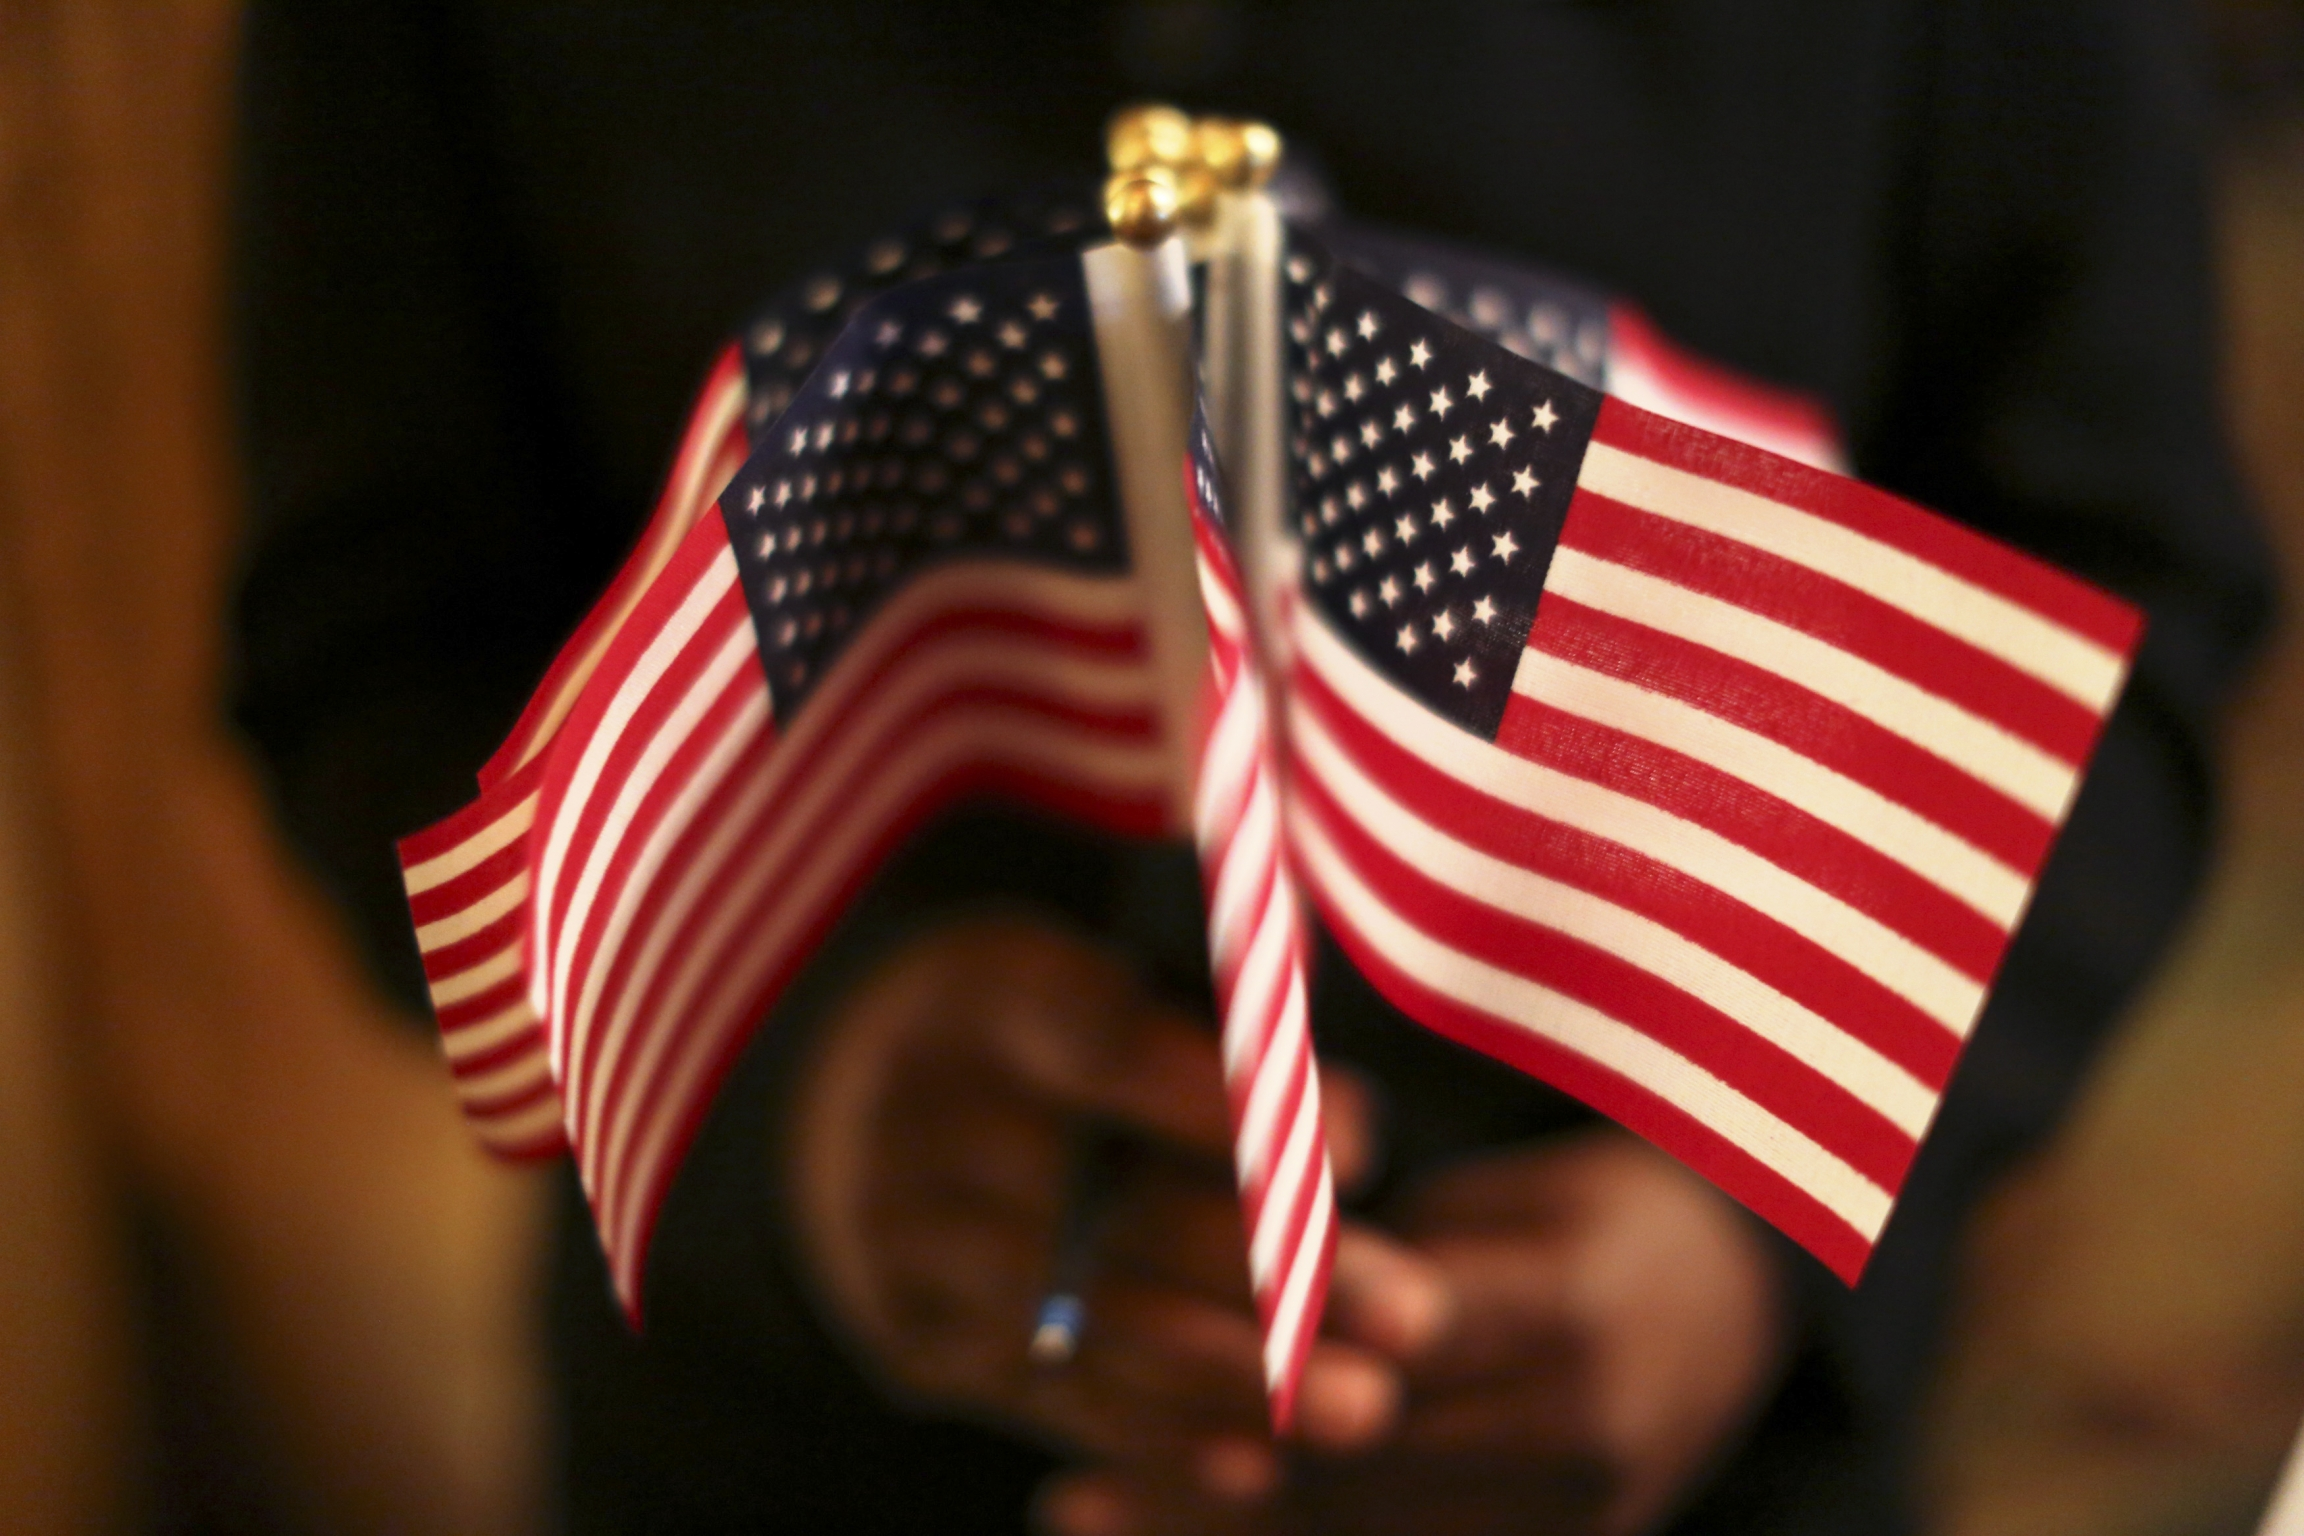 A woman holds a cluster of US flags during a US Citizenship and Immigration Services naturalization ceremony in Oakland, California, on Aug. 13, 2013.